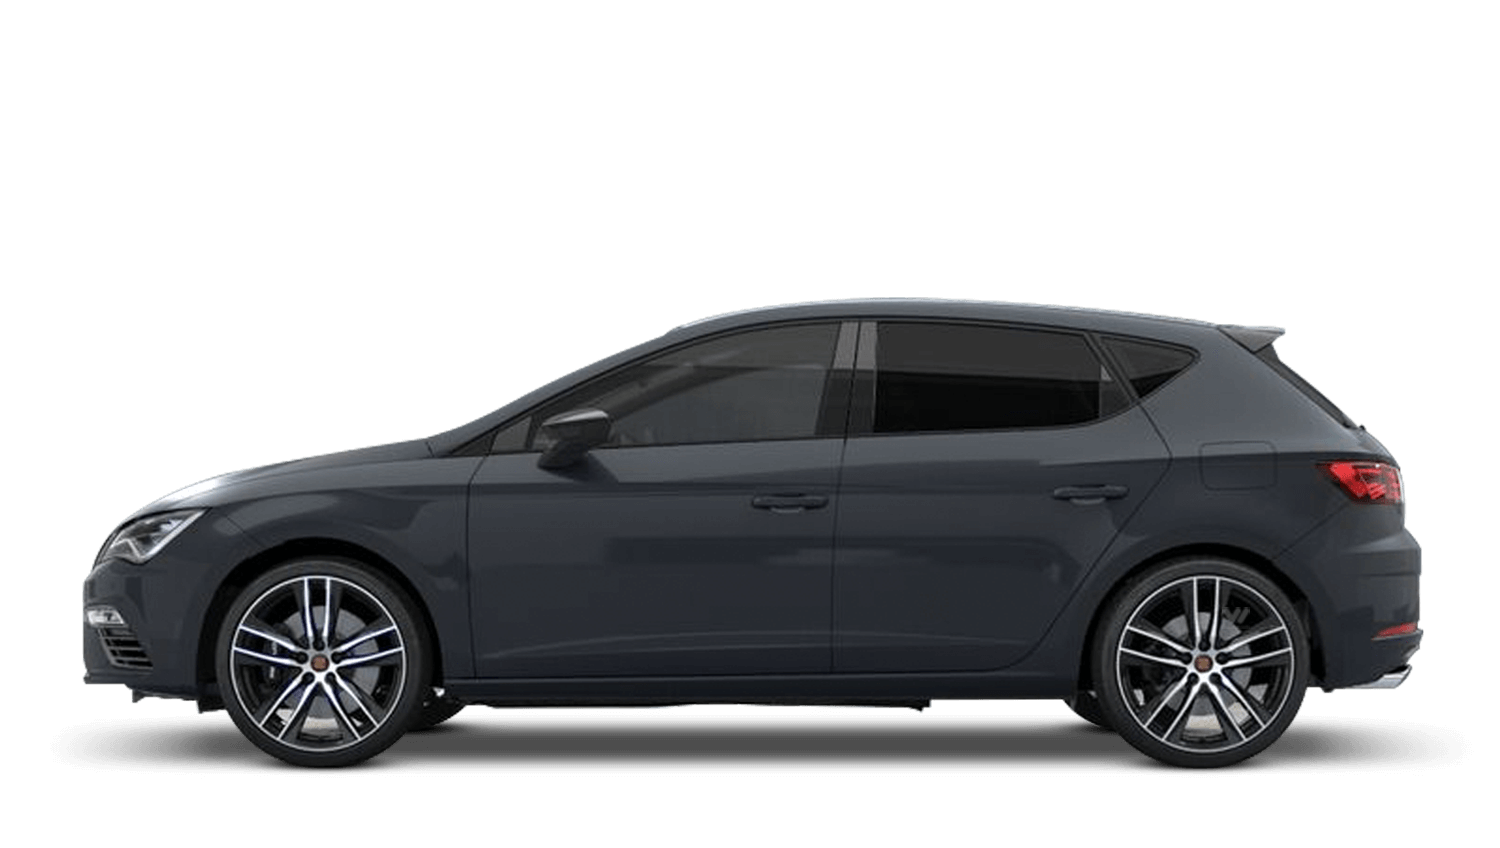 Magnetic Grey (Metallic) Leon 5DR CUPRA